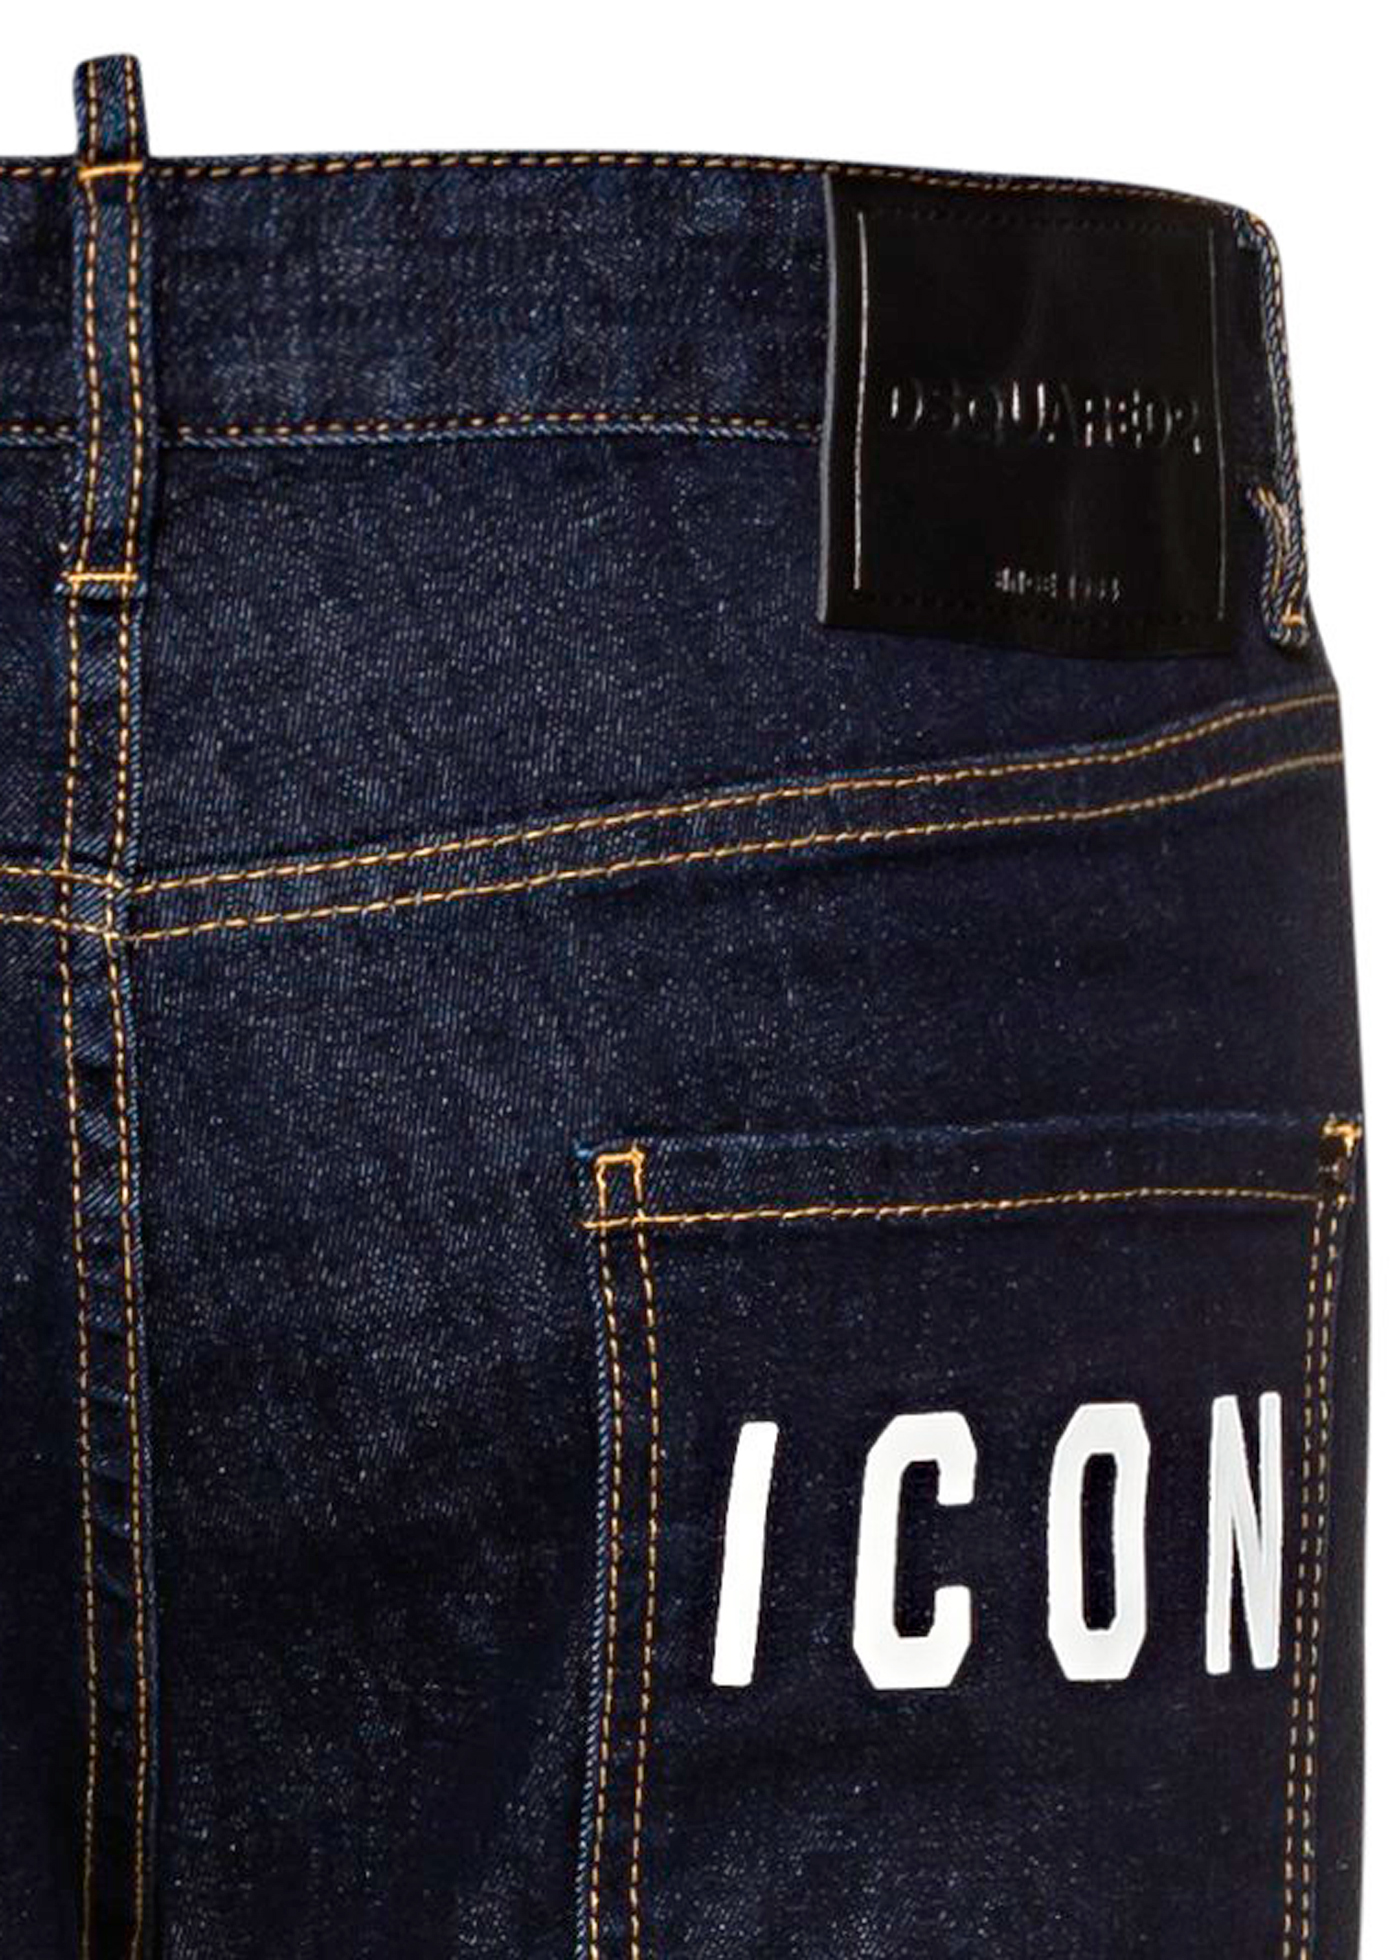 Icon Jeans image number 3